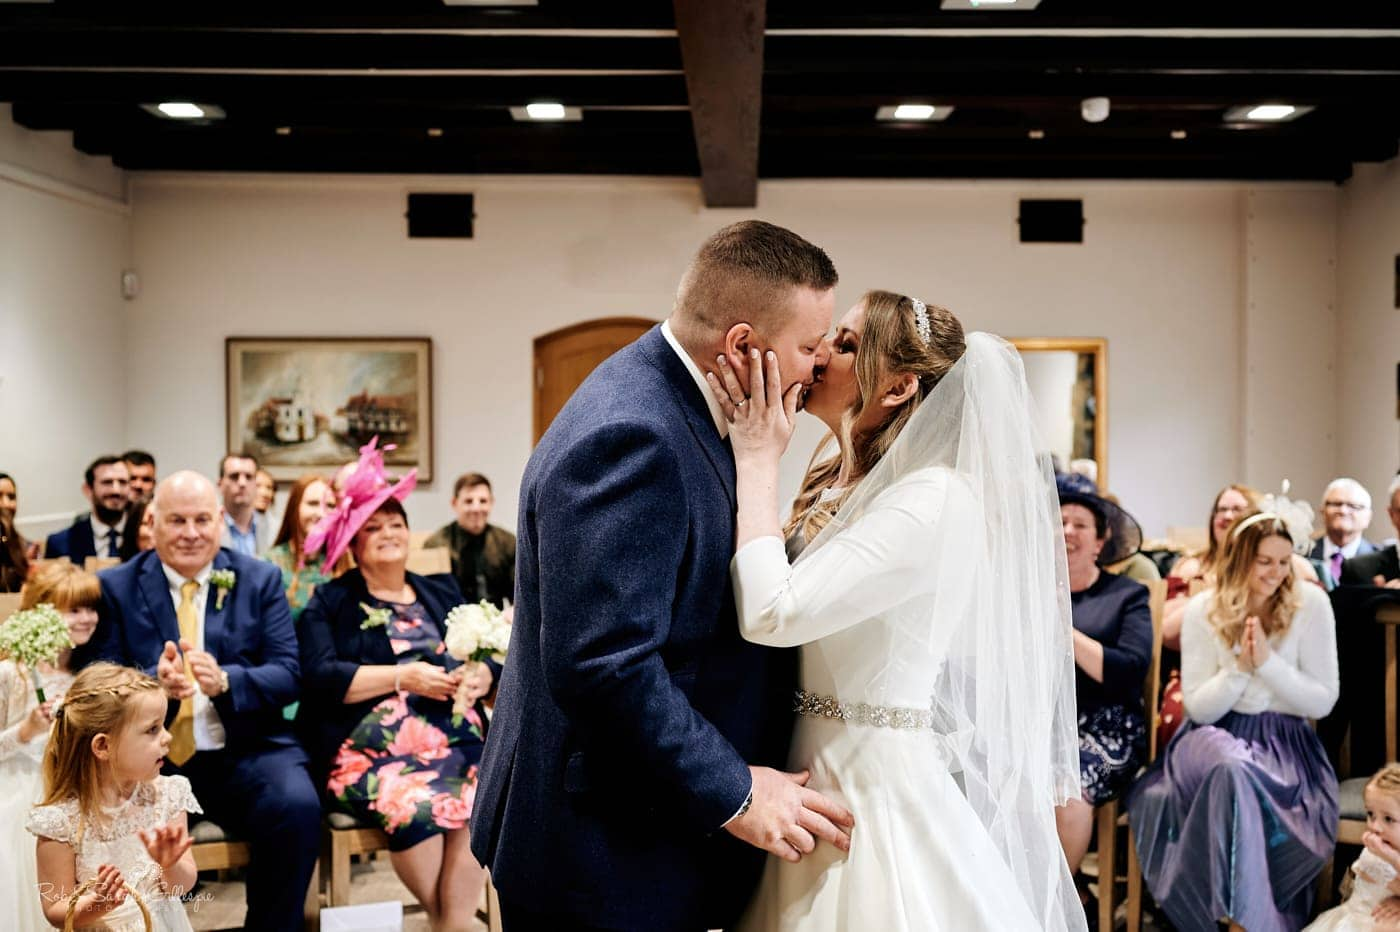 Bride and groom kiss during small wedding ceremony